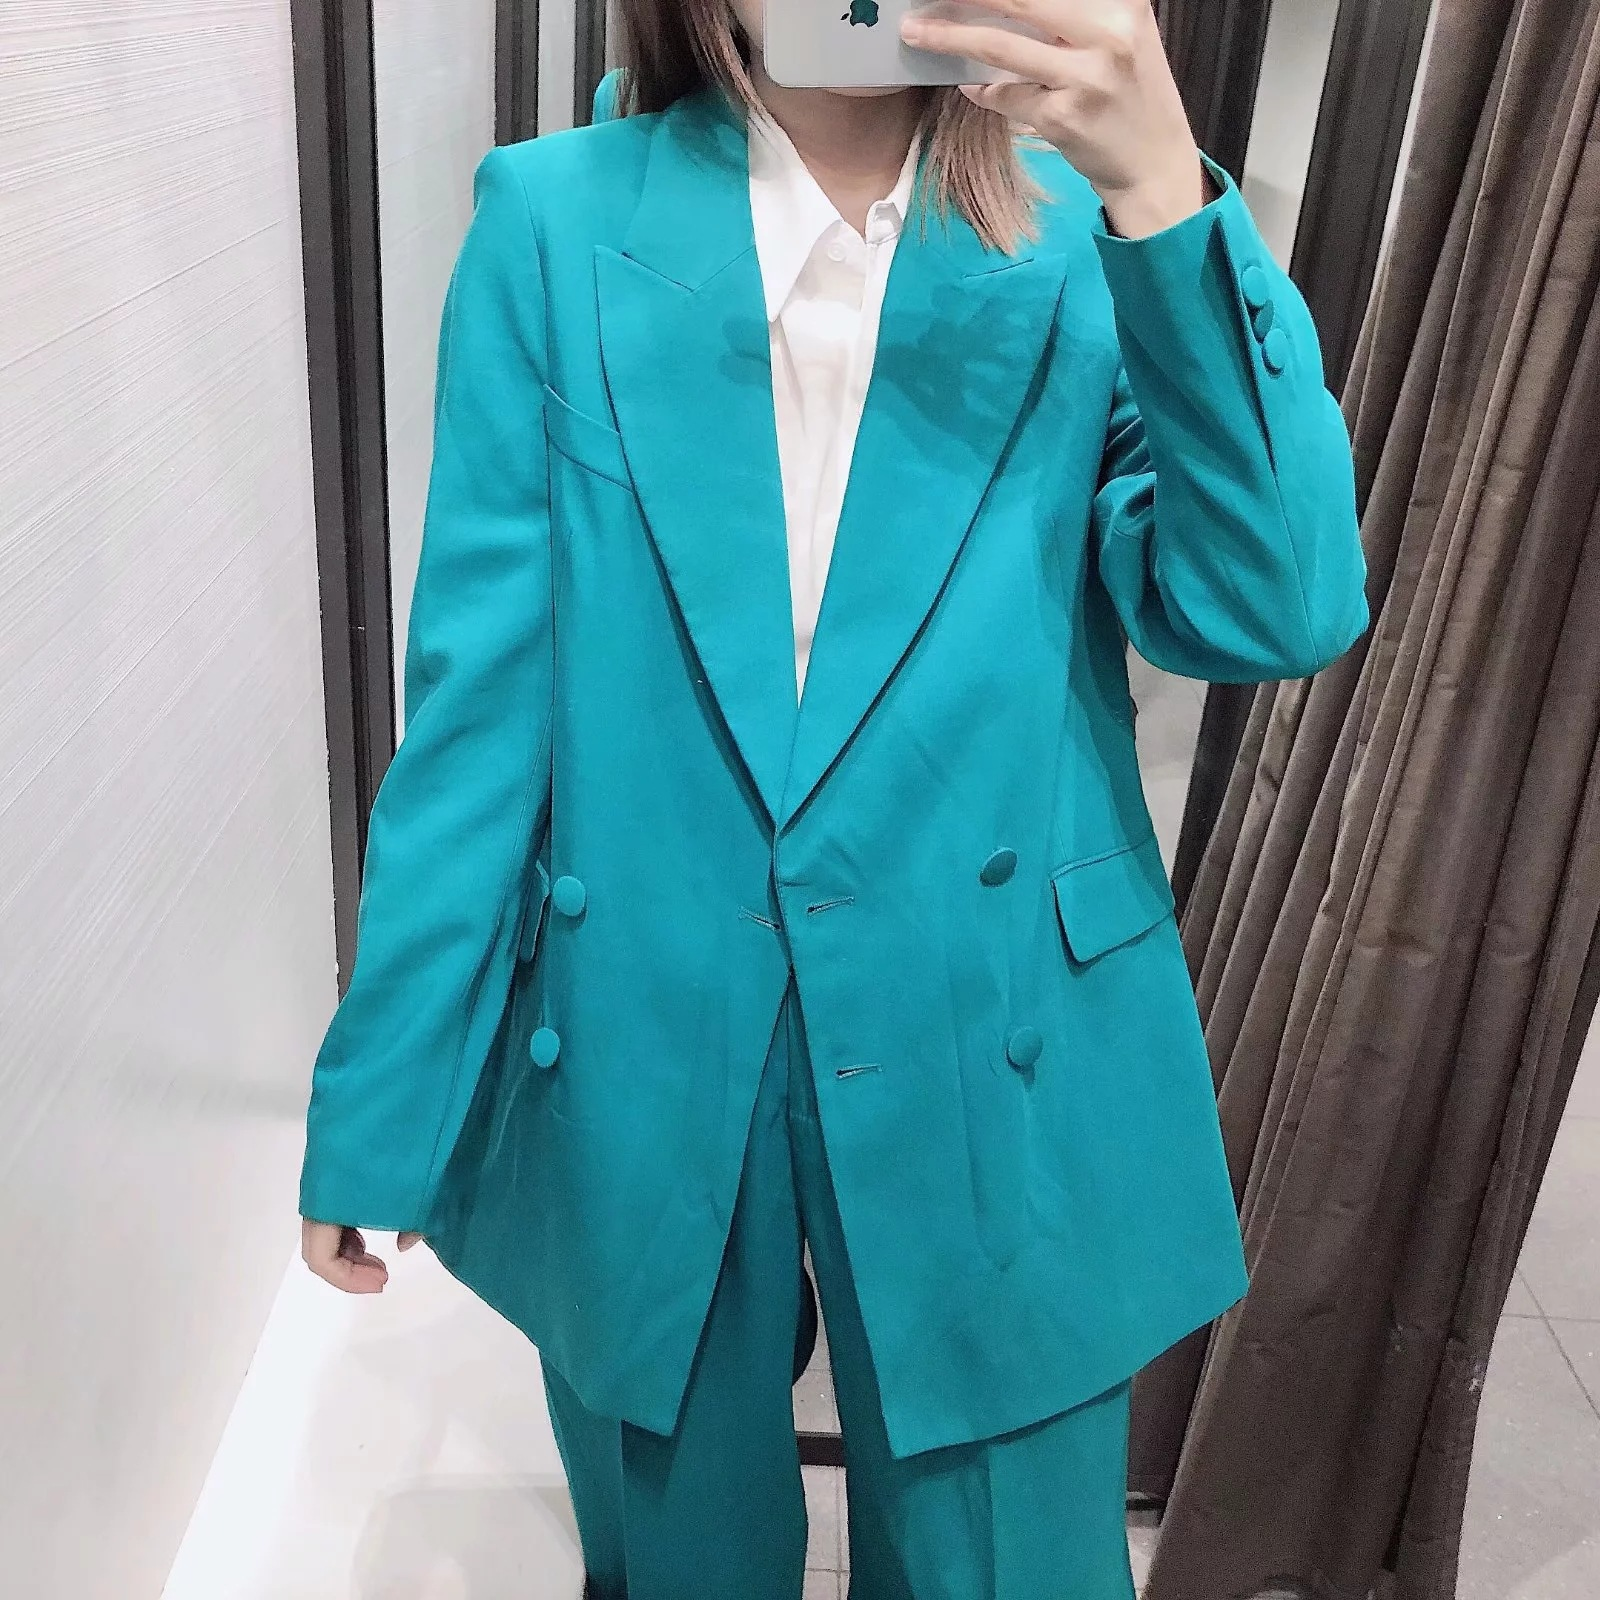 Autumn new women's suits pants suit Casual loose double-breasted suit jacket female Fashion pleated wide-leg pants Two-piece set